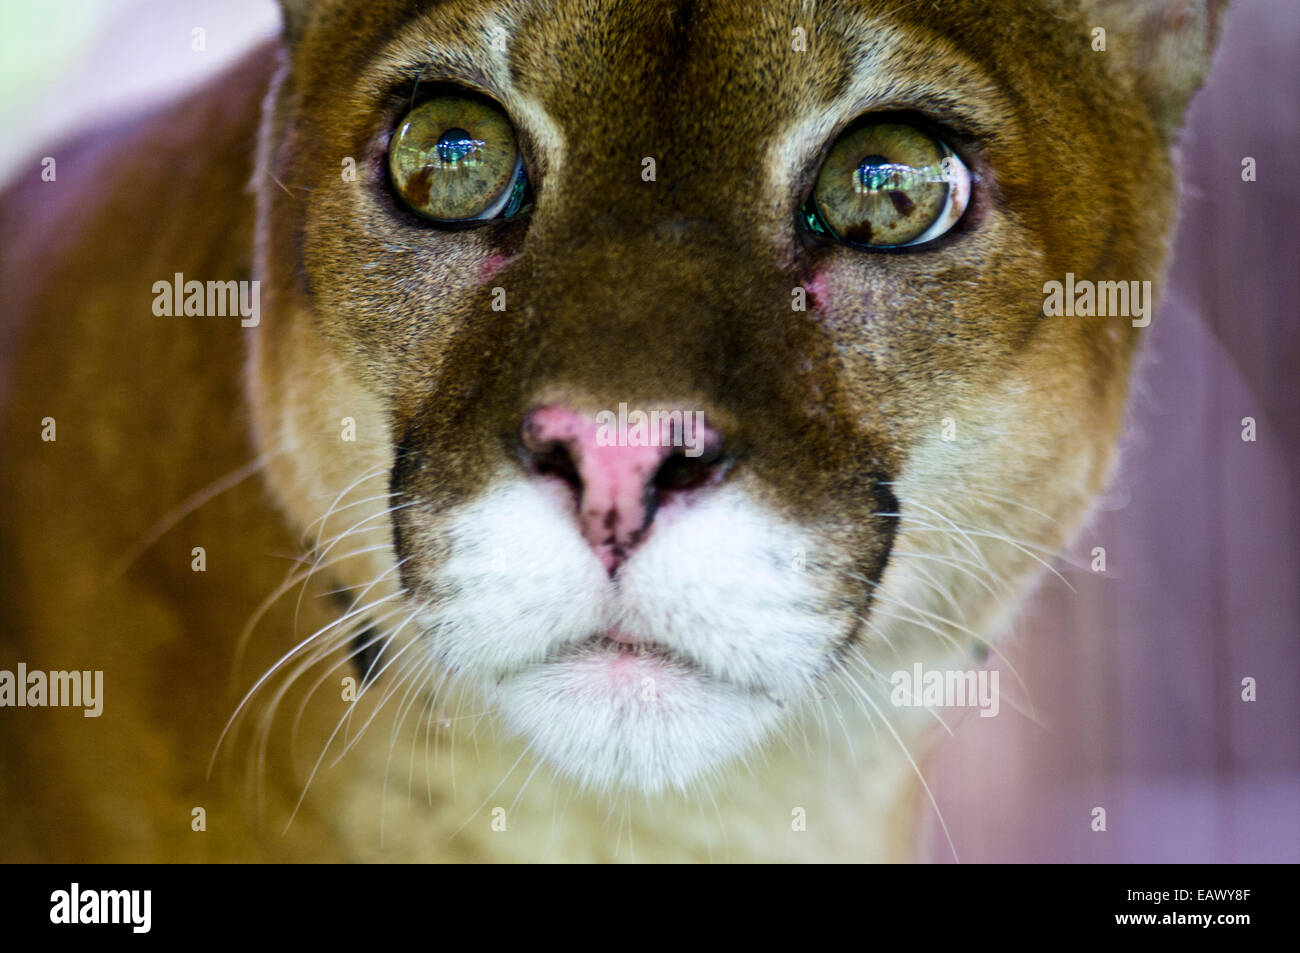 The wide-eyed inquisitive yet serene stare of a Mountain Lion with lime green eyes. Stock Photo